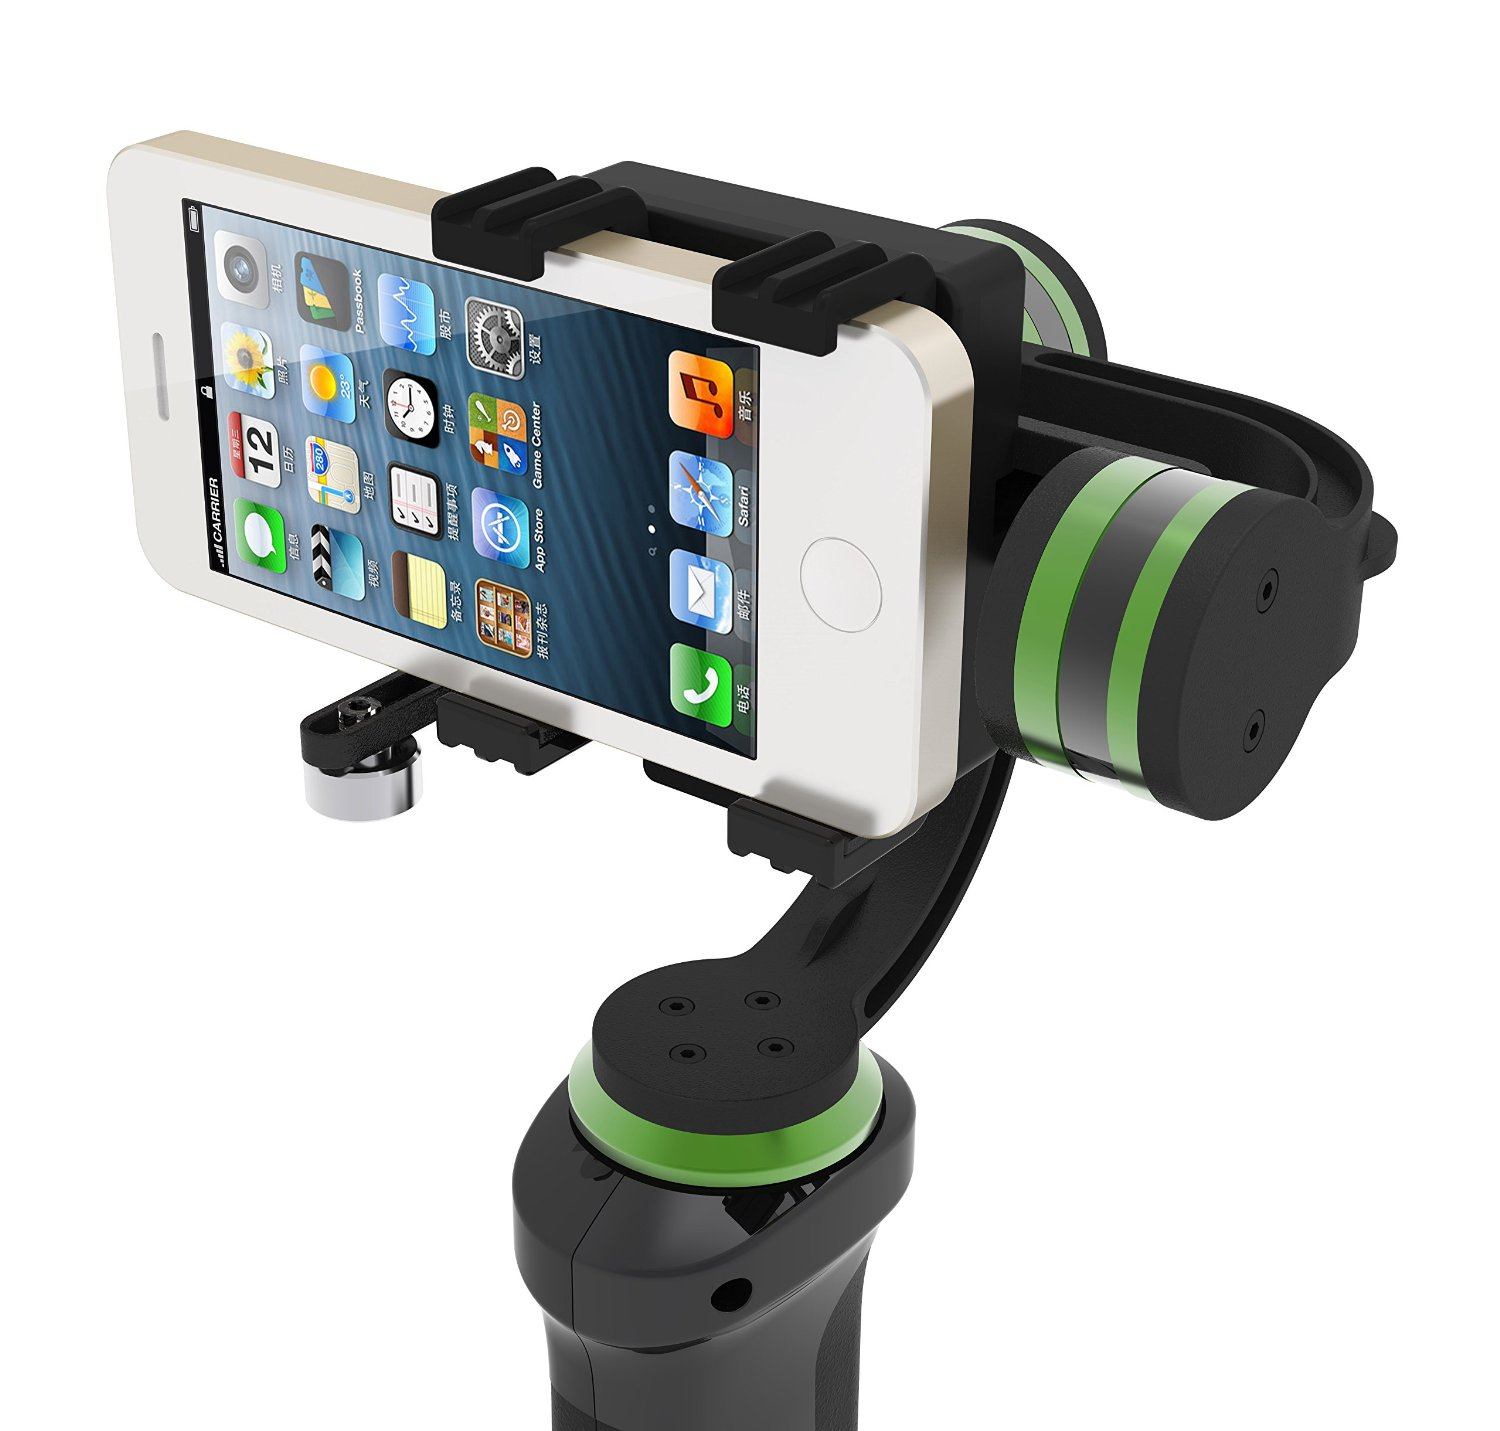 3 Smartphone Gimbal Stabilizers To Improve Your Shots